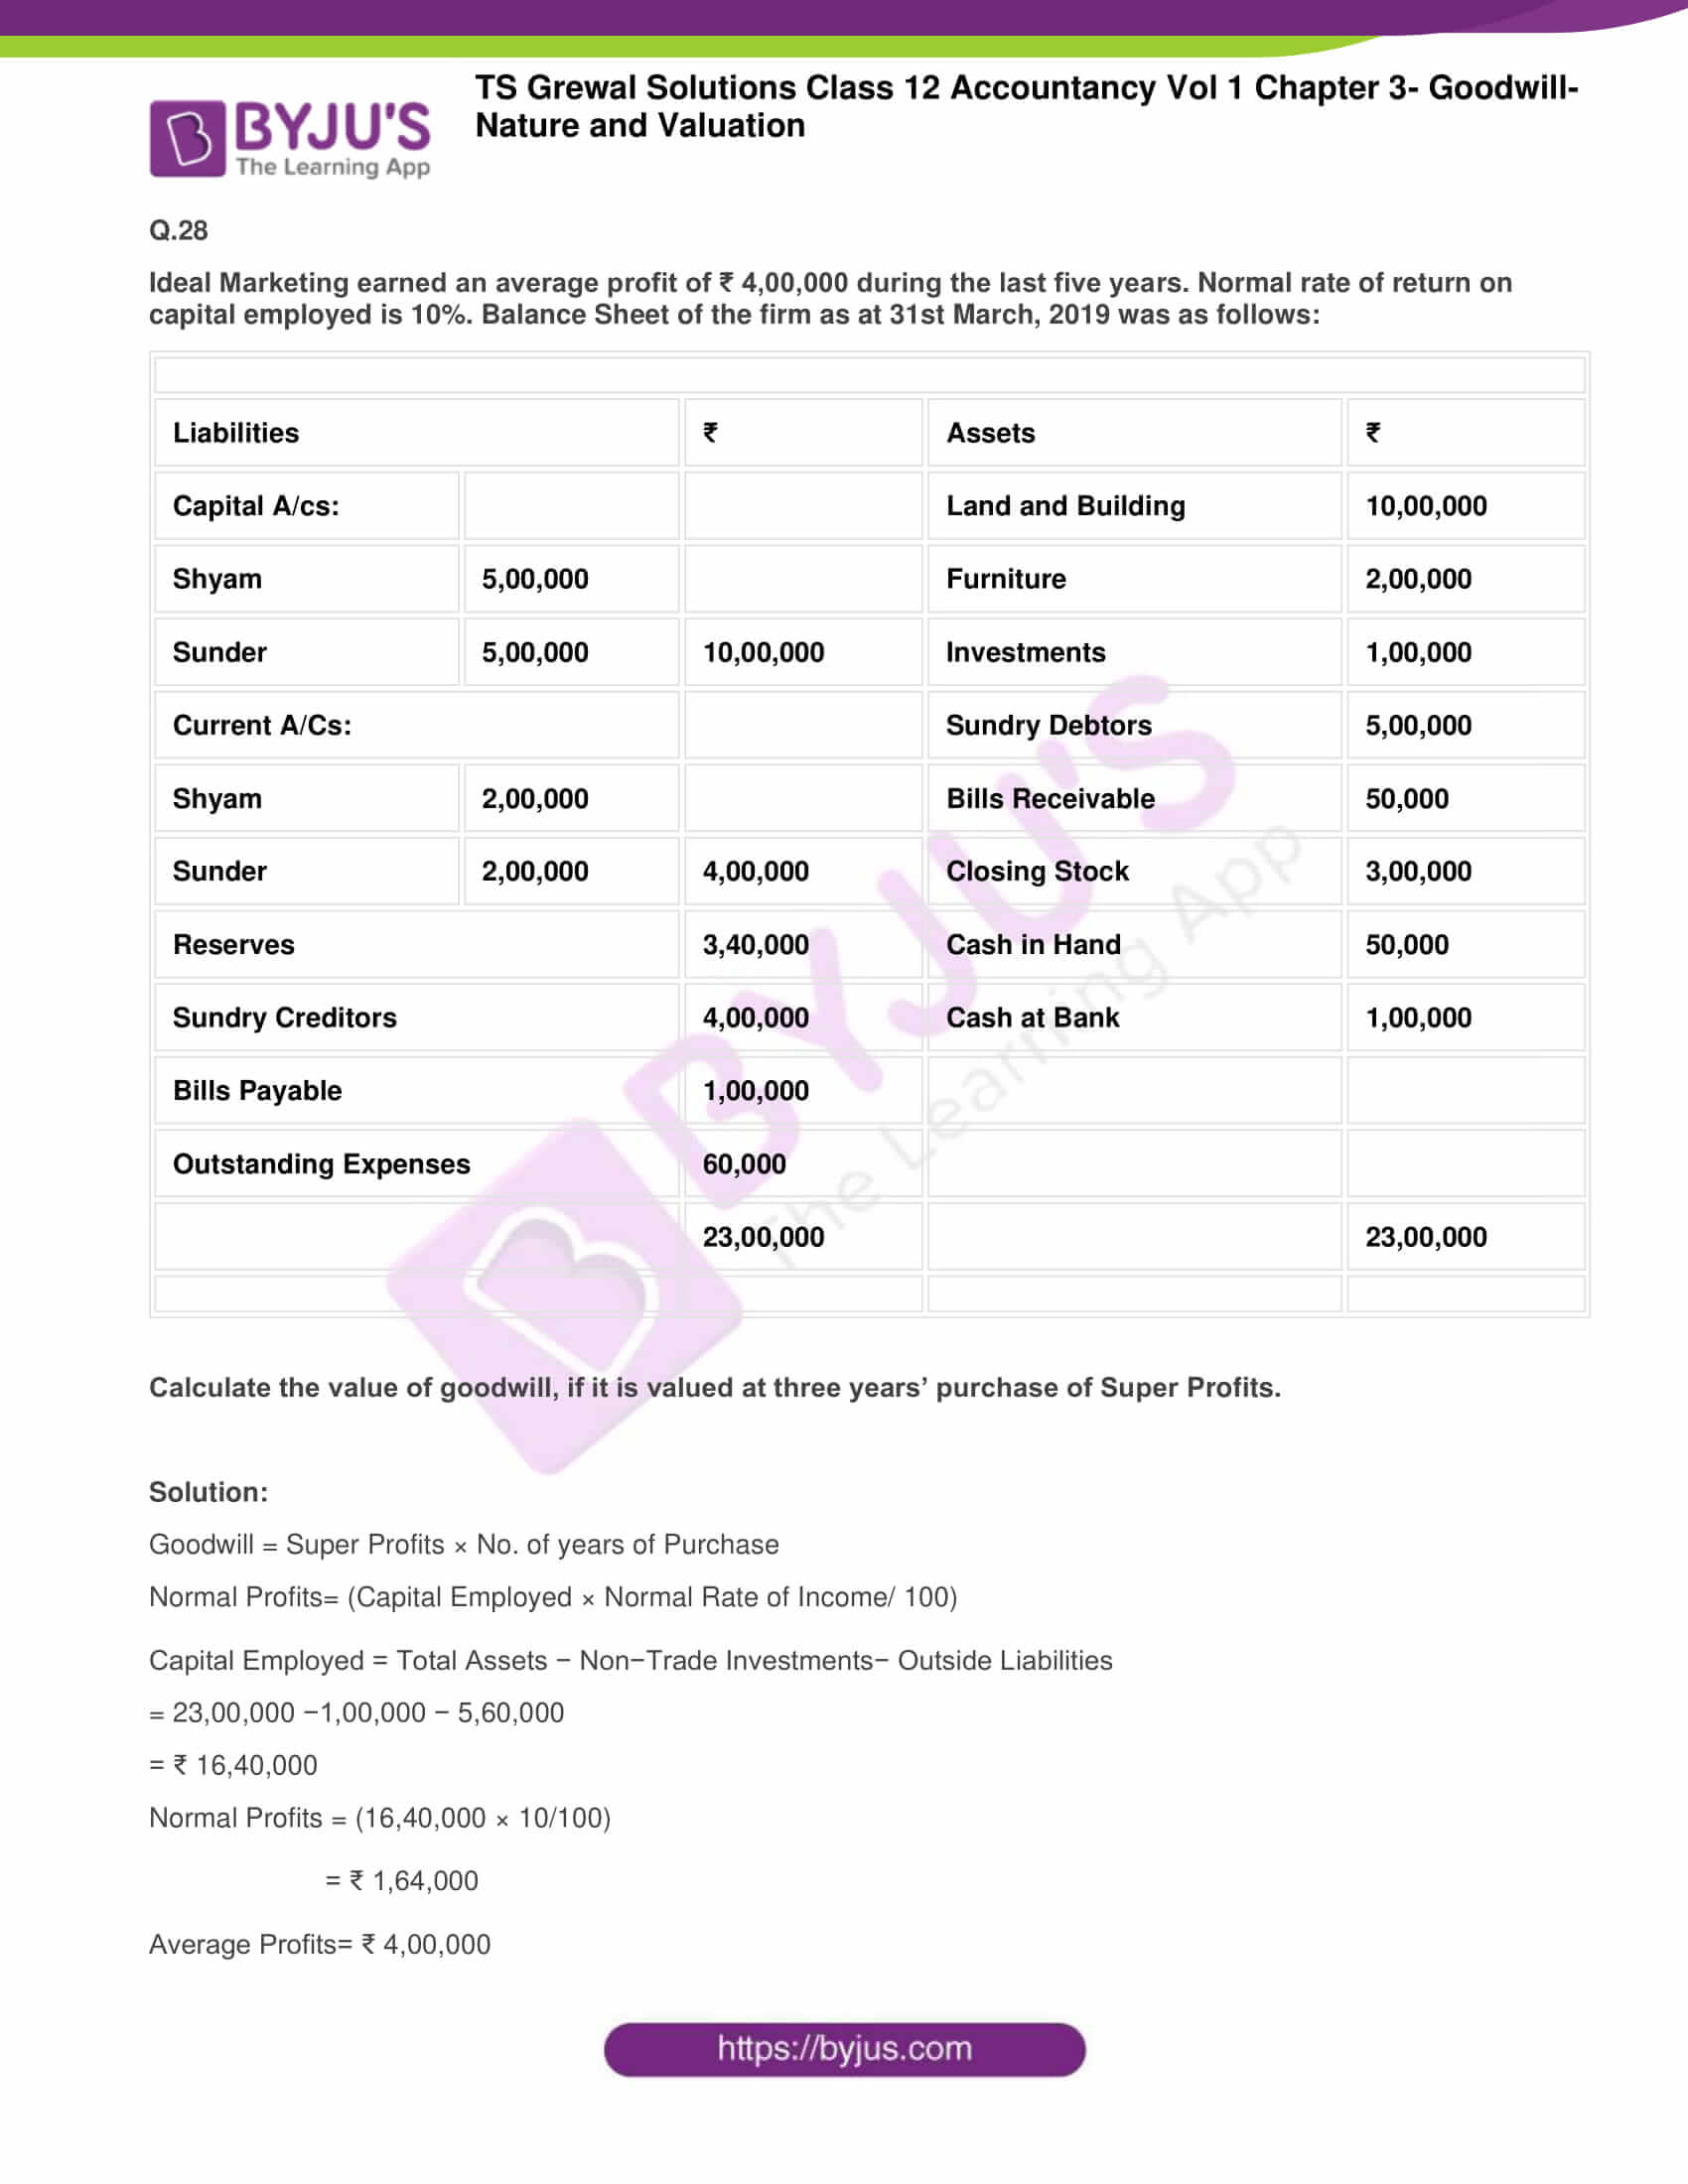 ts grewal solutions for class 12 accountancy vol 1 chapter 325